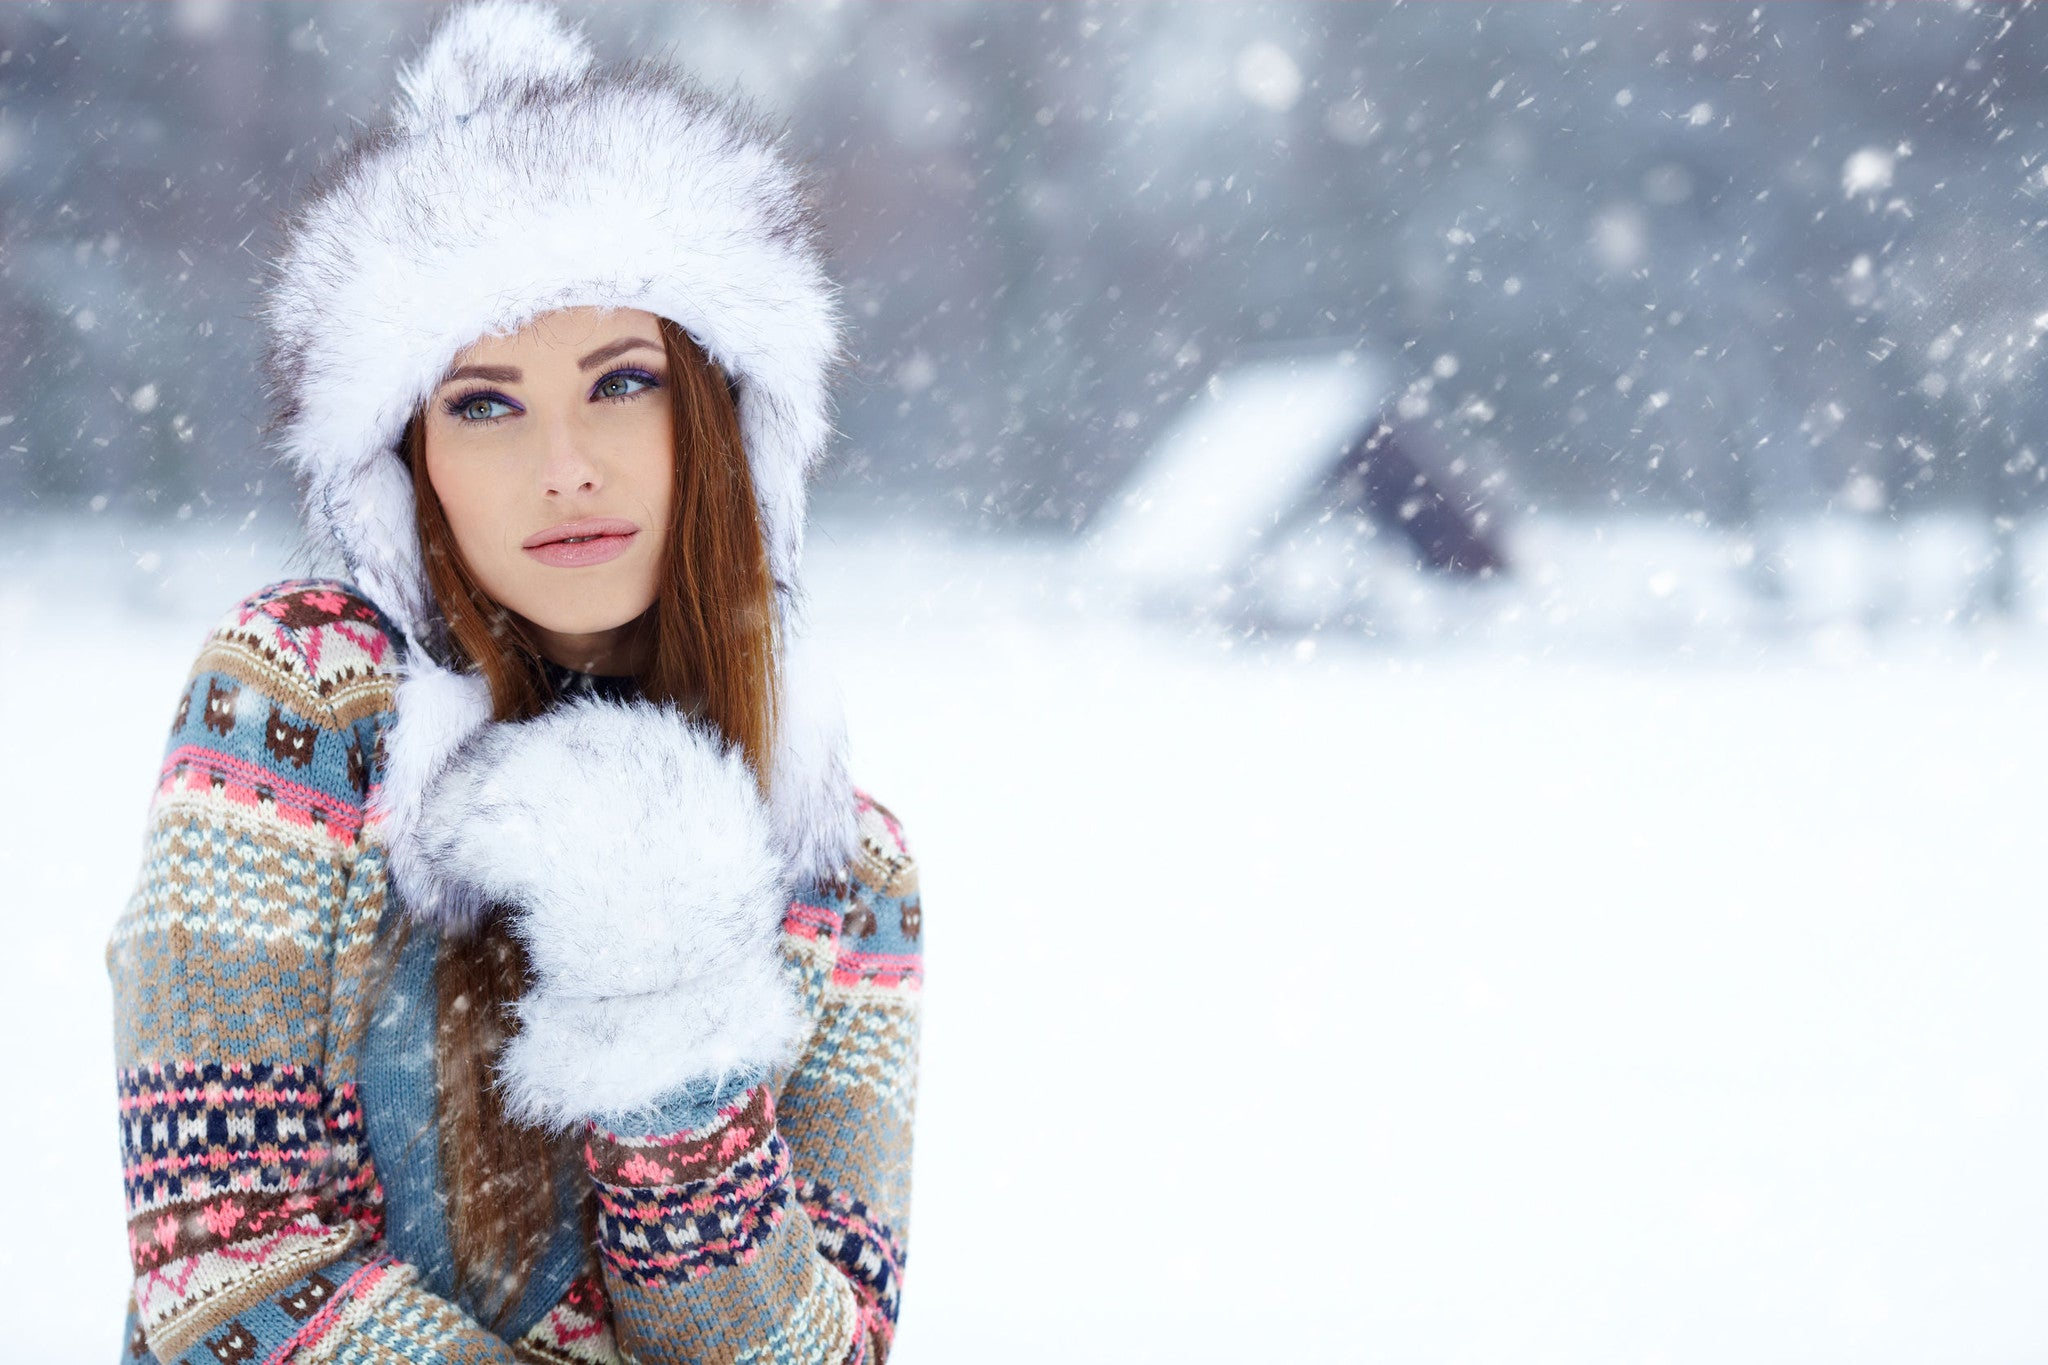 Snow Glow: 8 Quick Tips for Healthy Radiant Winter Skin